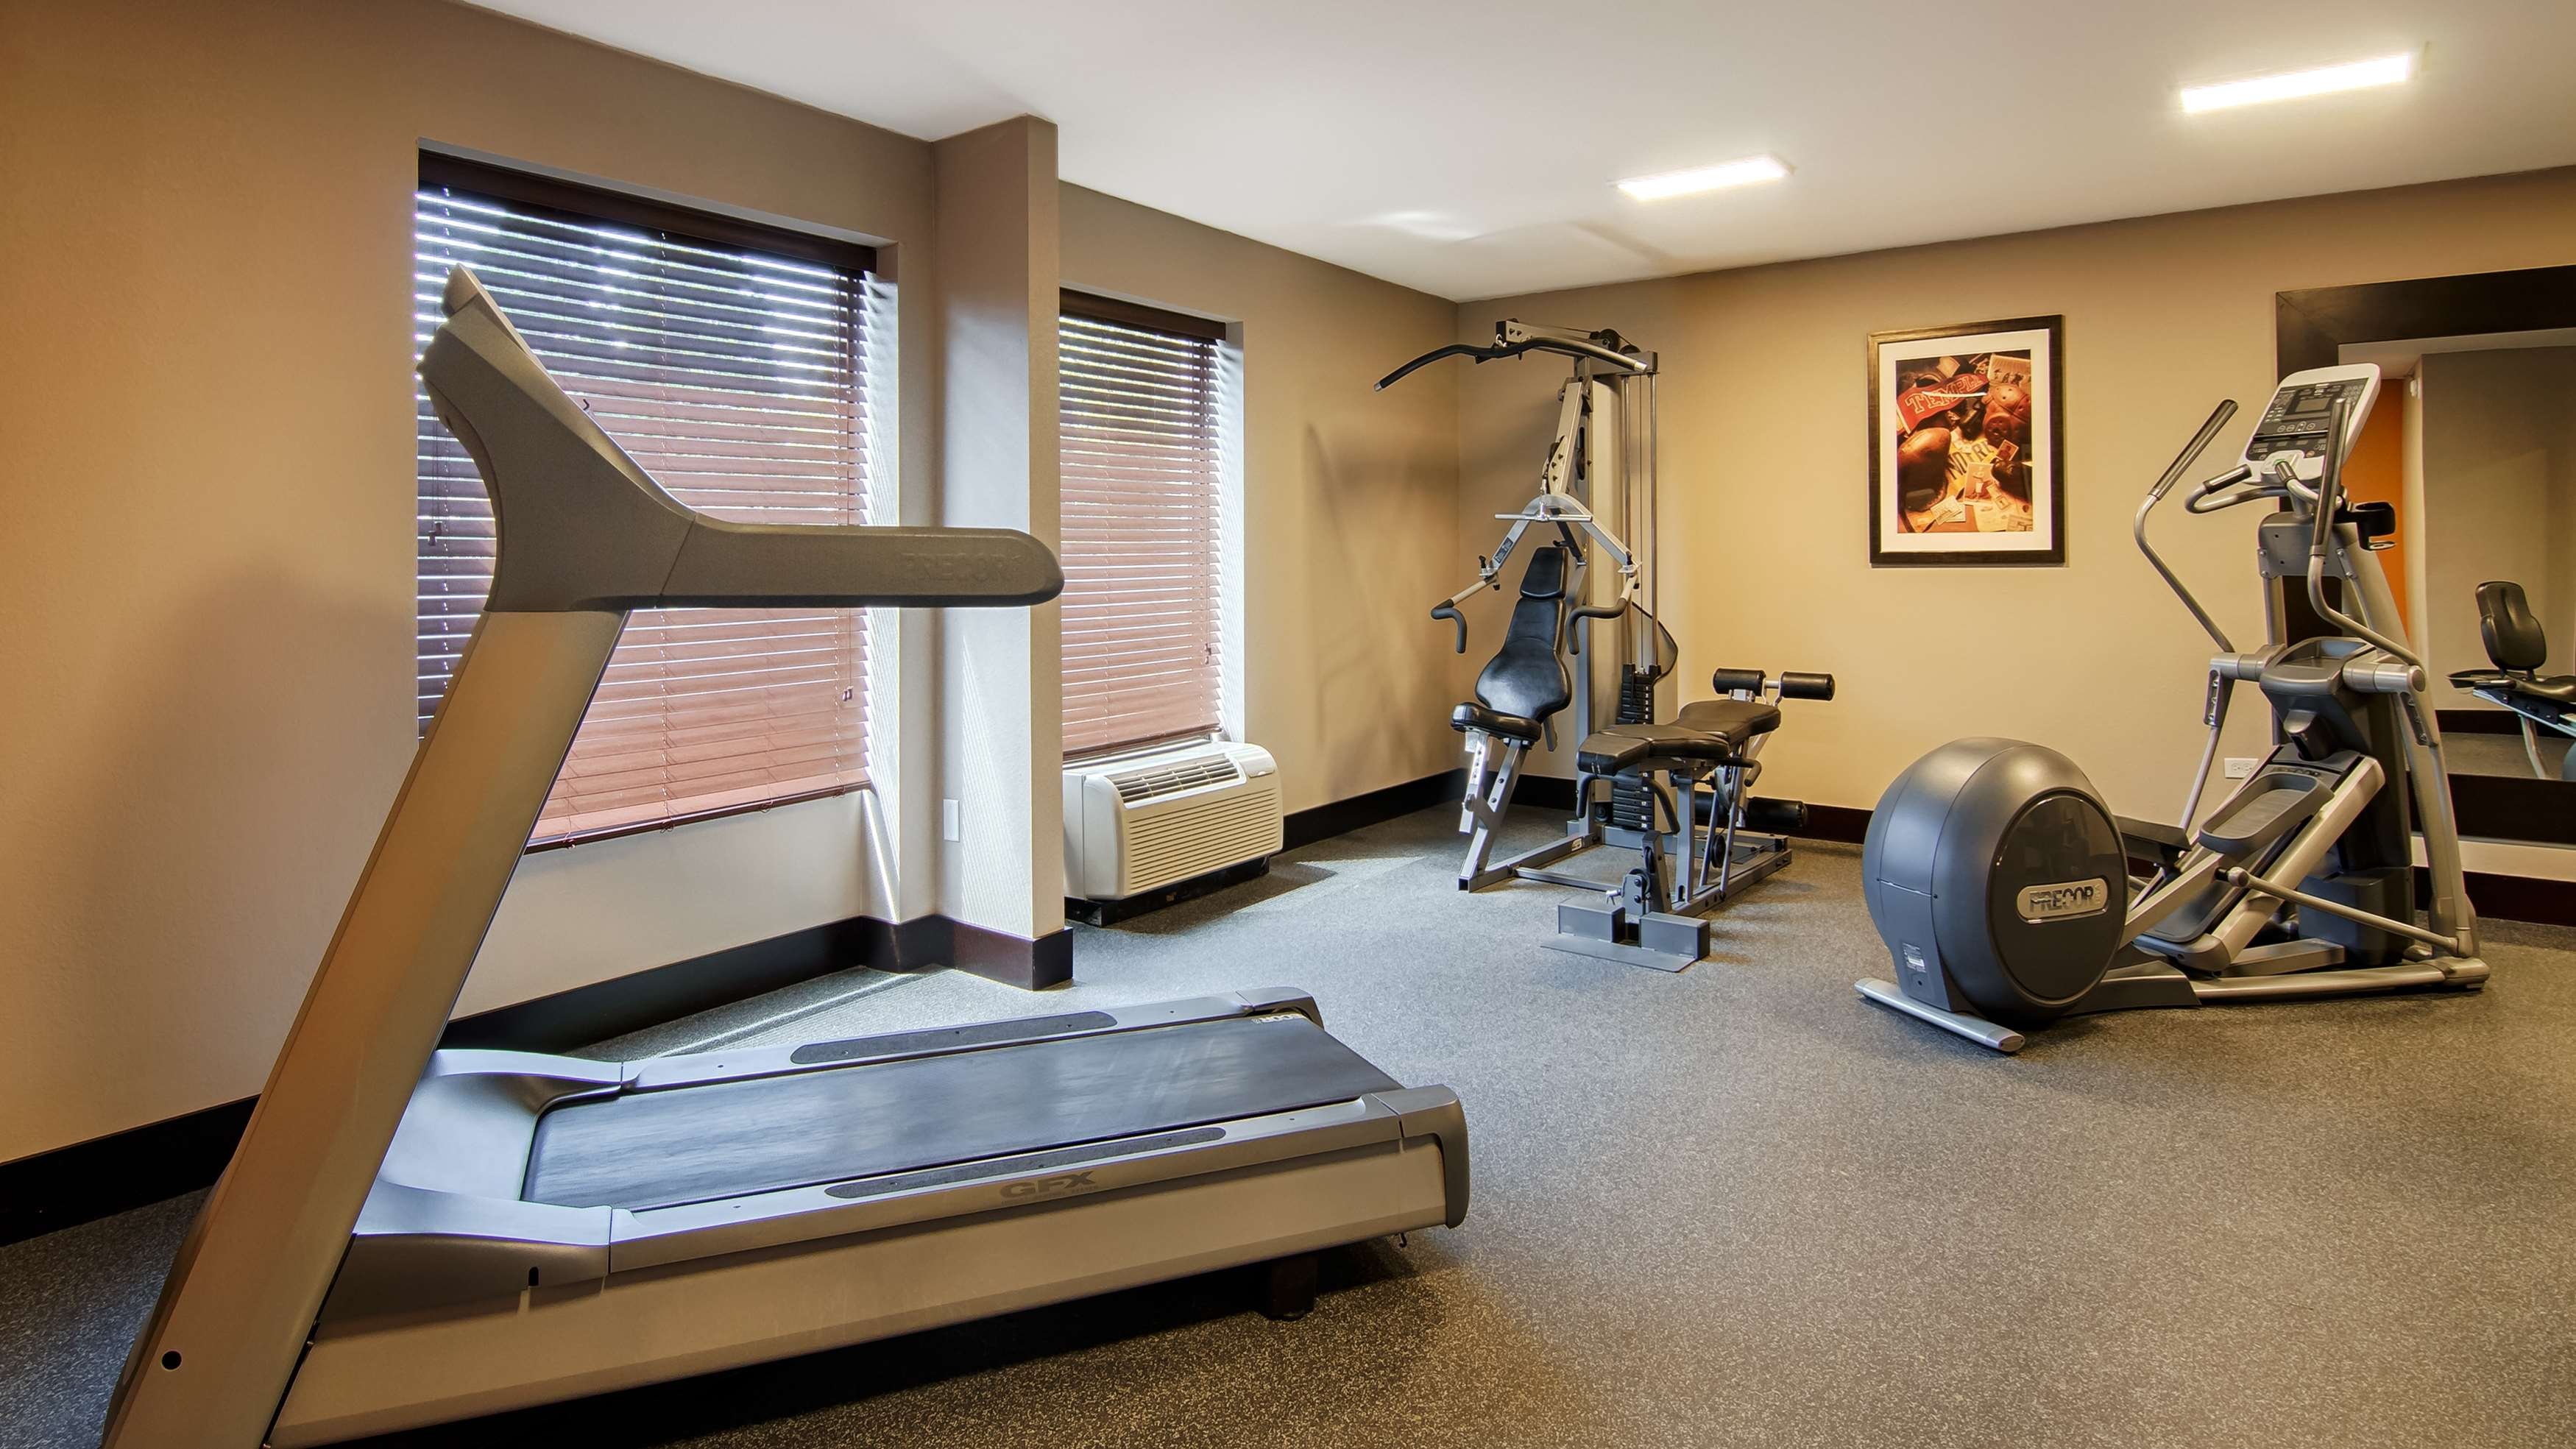 Best Western Plus Chicagoland - Countryside image 36